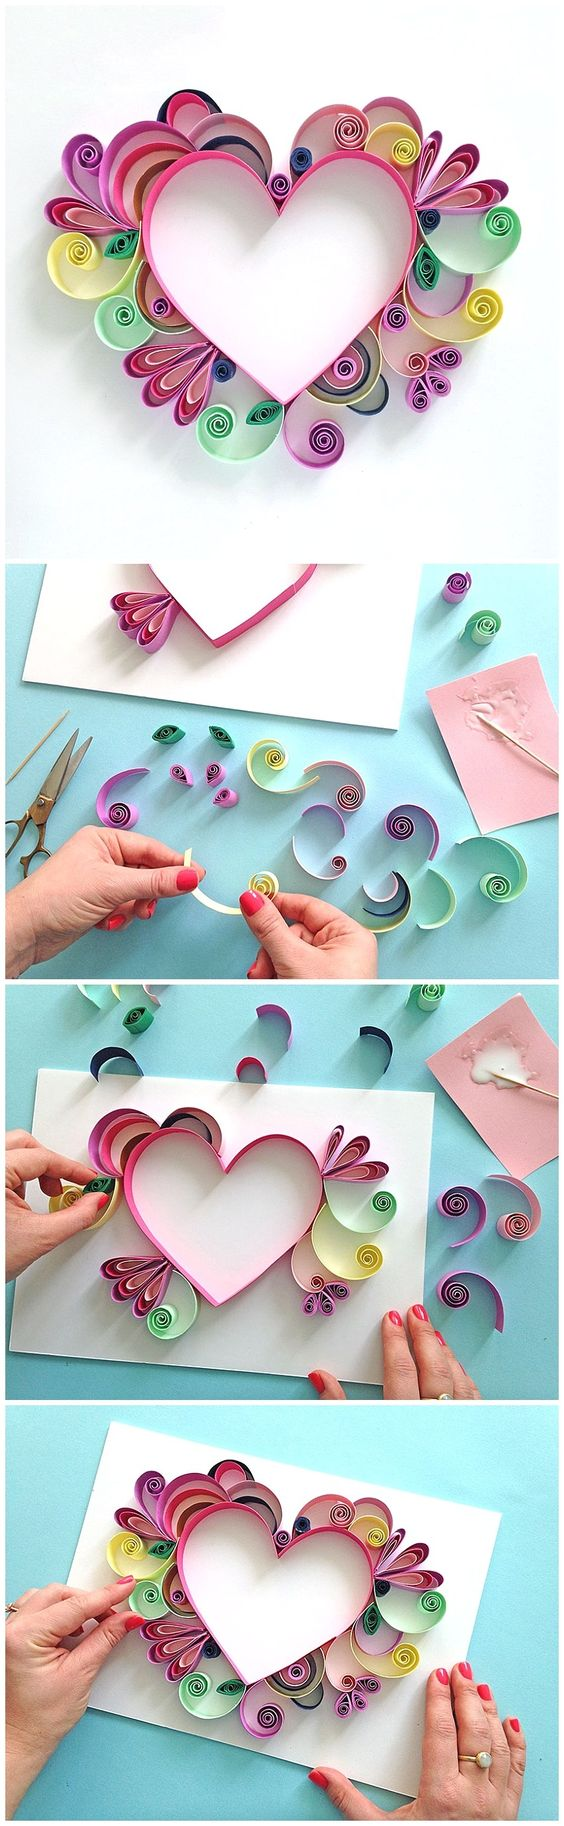 Heart Shaped Quilling Paper Craft.